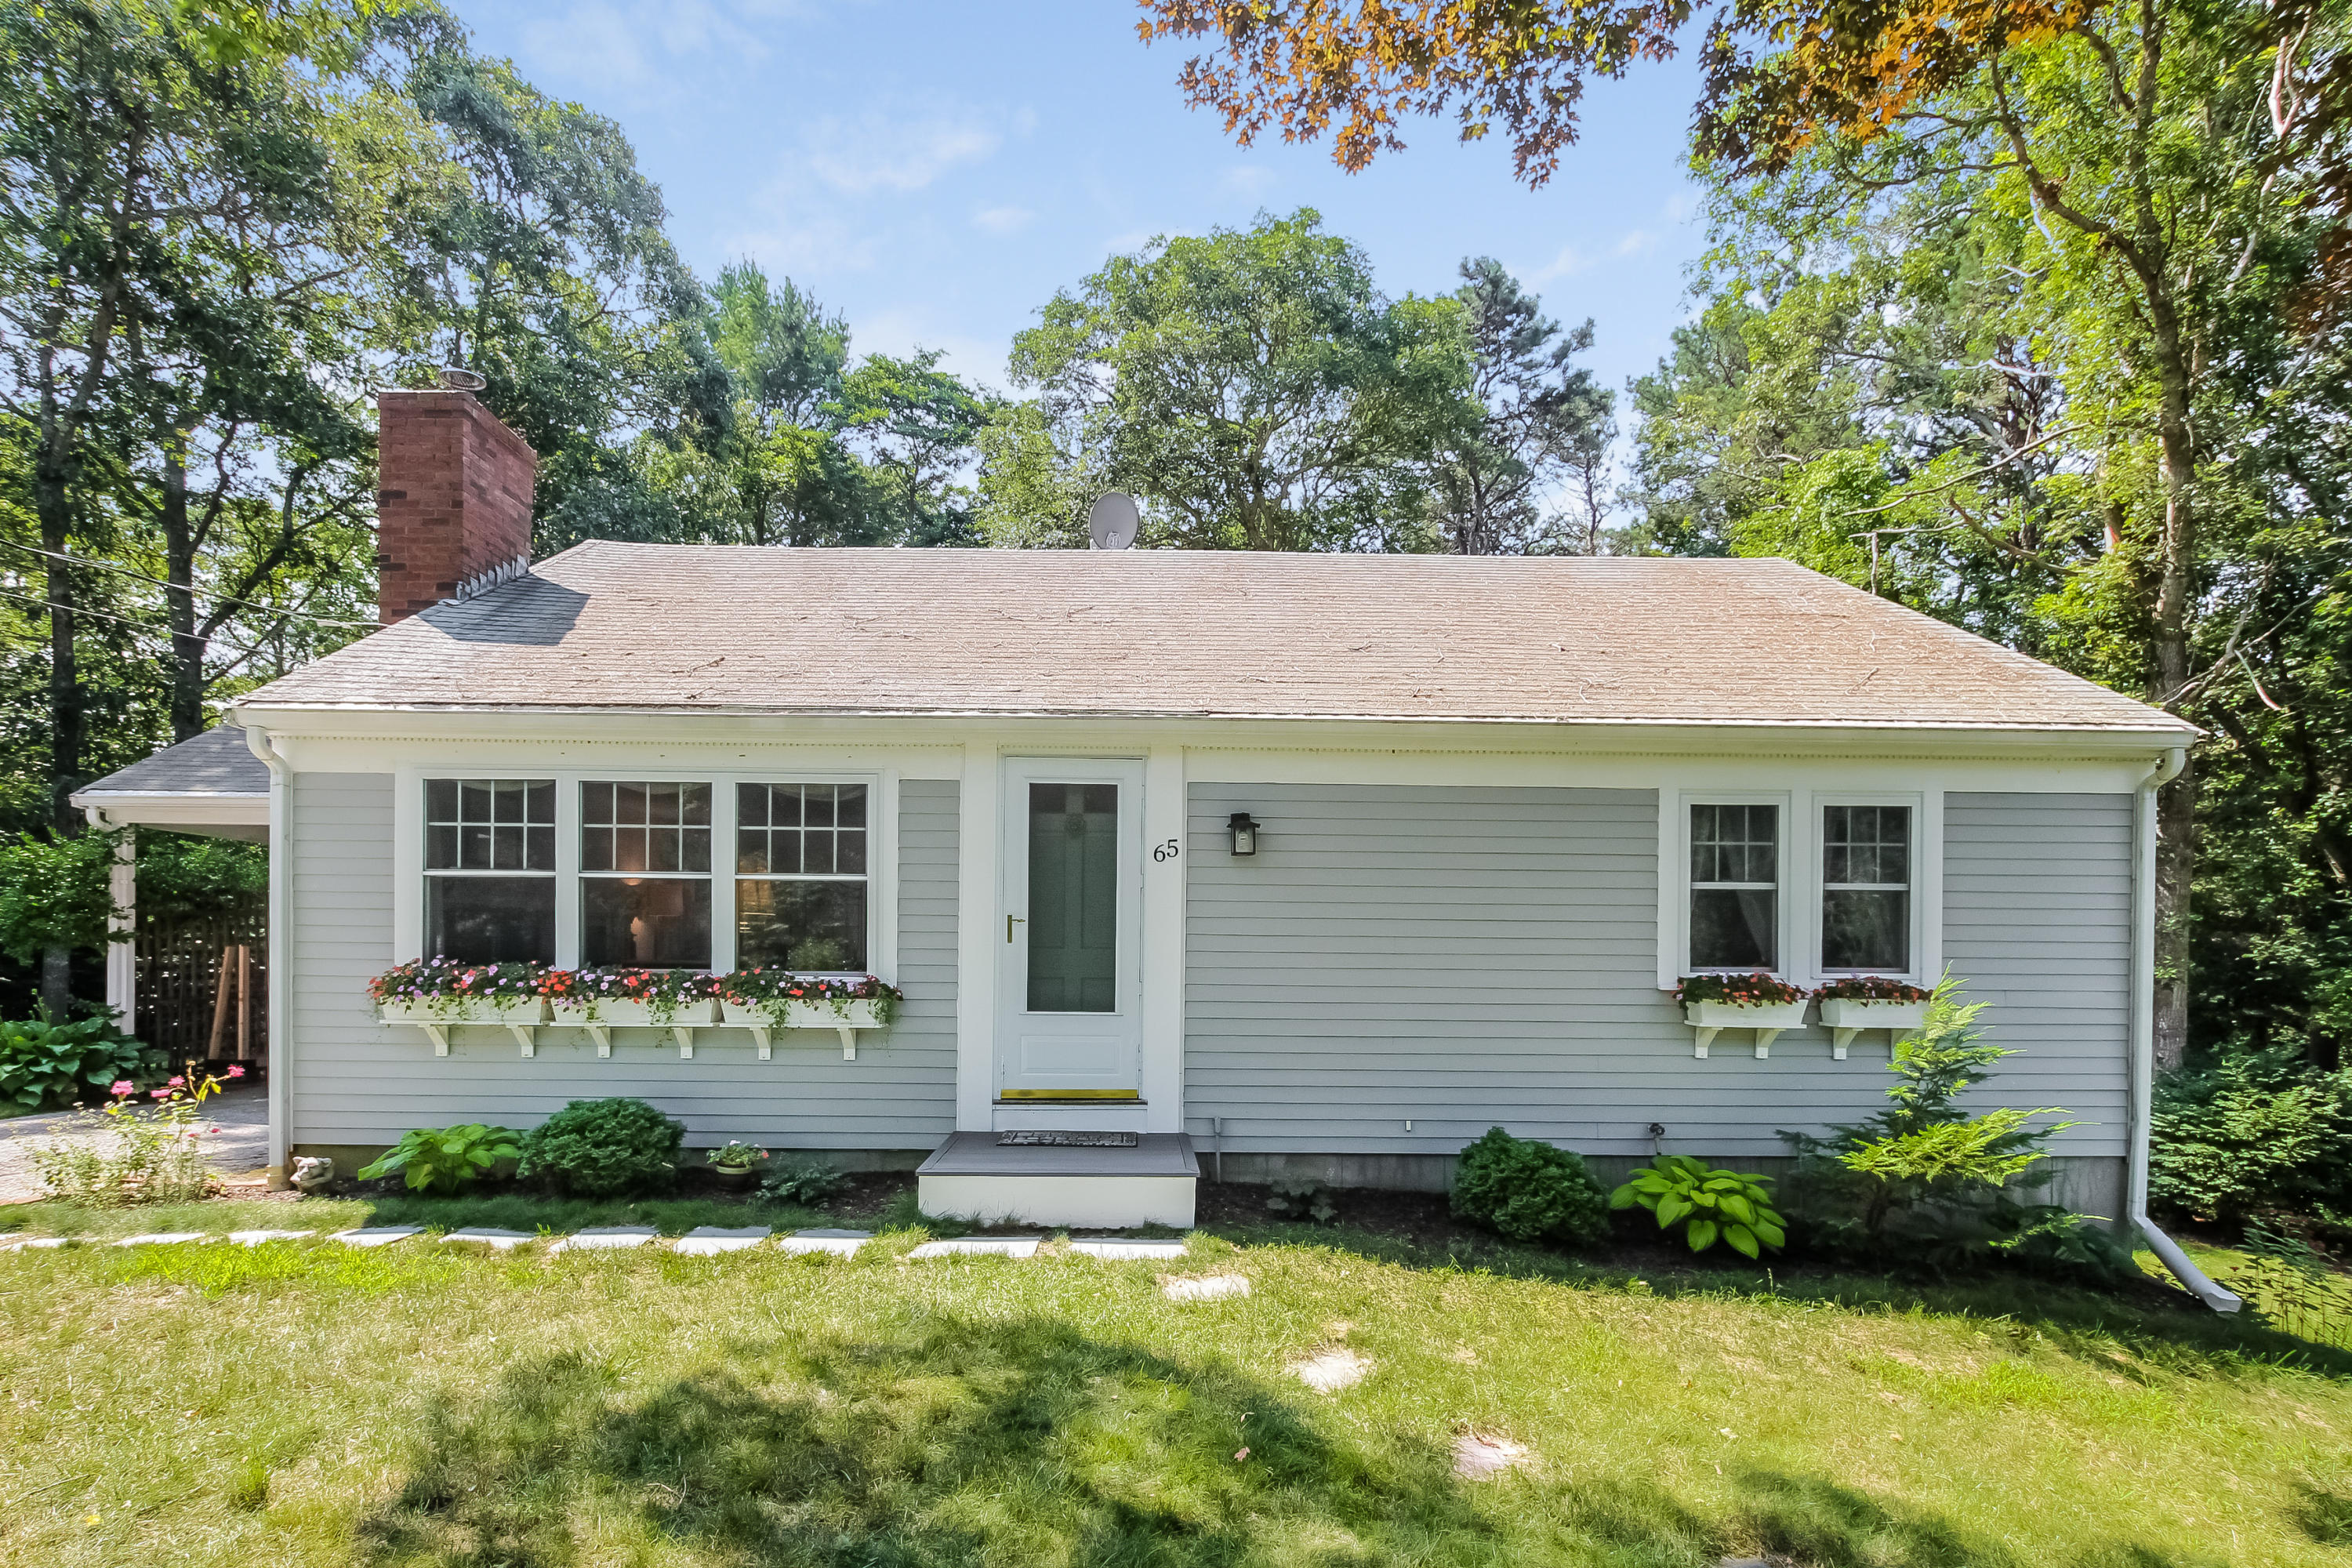 65 Cranberry Lane Barnstable, MA 02632